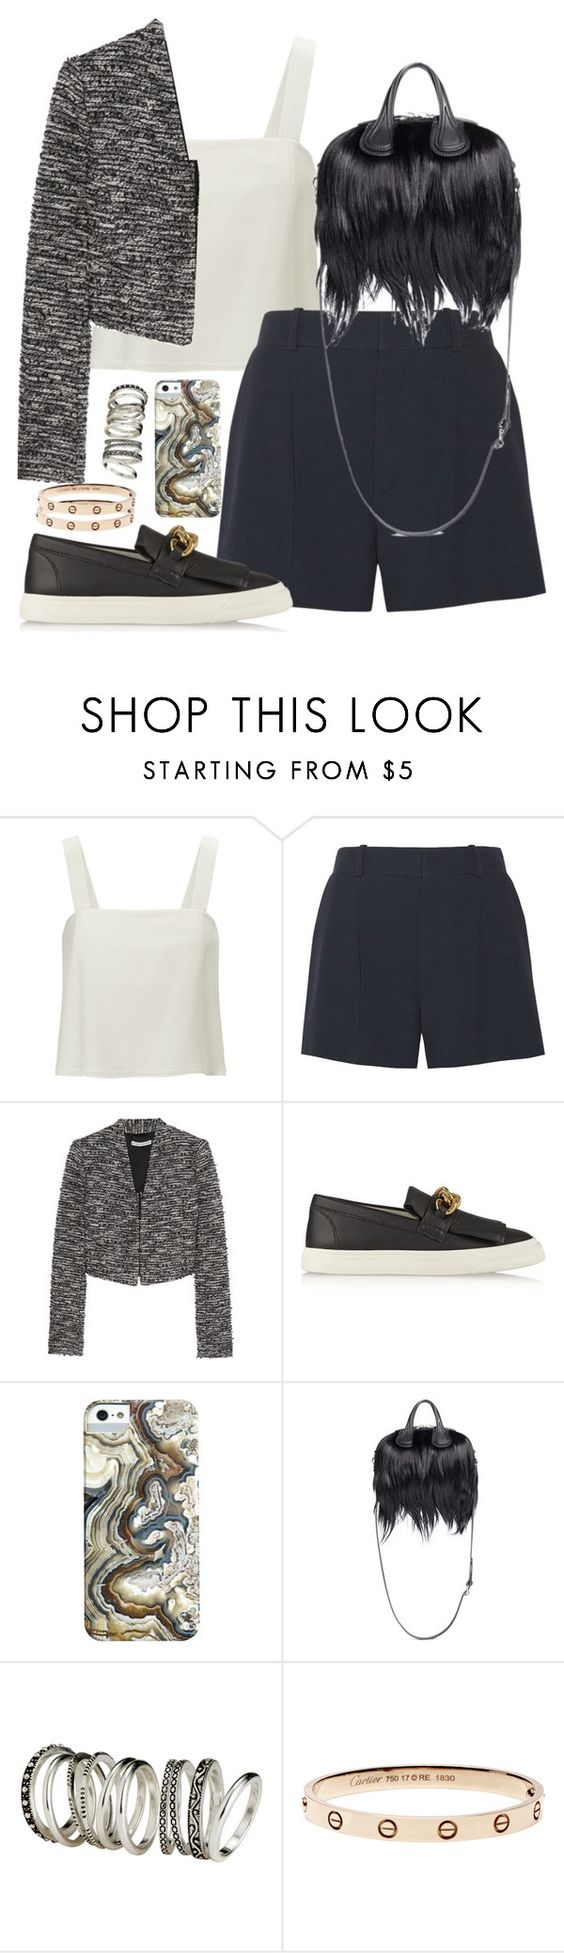 """""""Untitled #734"""" by malurodz ❤ liked on Polyvore featuring 3.1 Phillip Lim, Chloé, Alice + Olivia, Giuseppe Zanotti, Givenchy and H&M"""